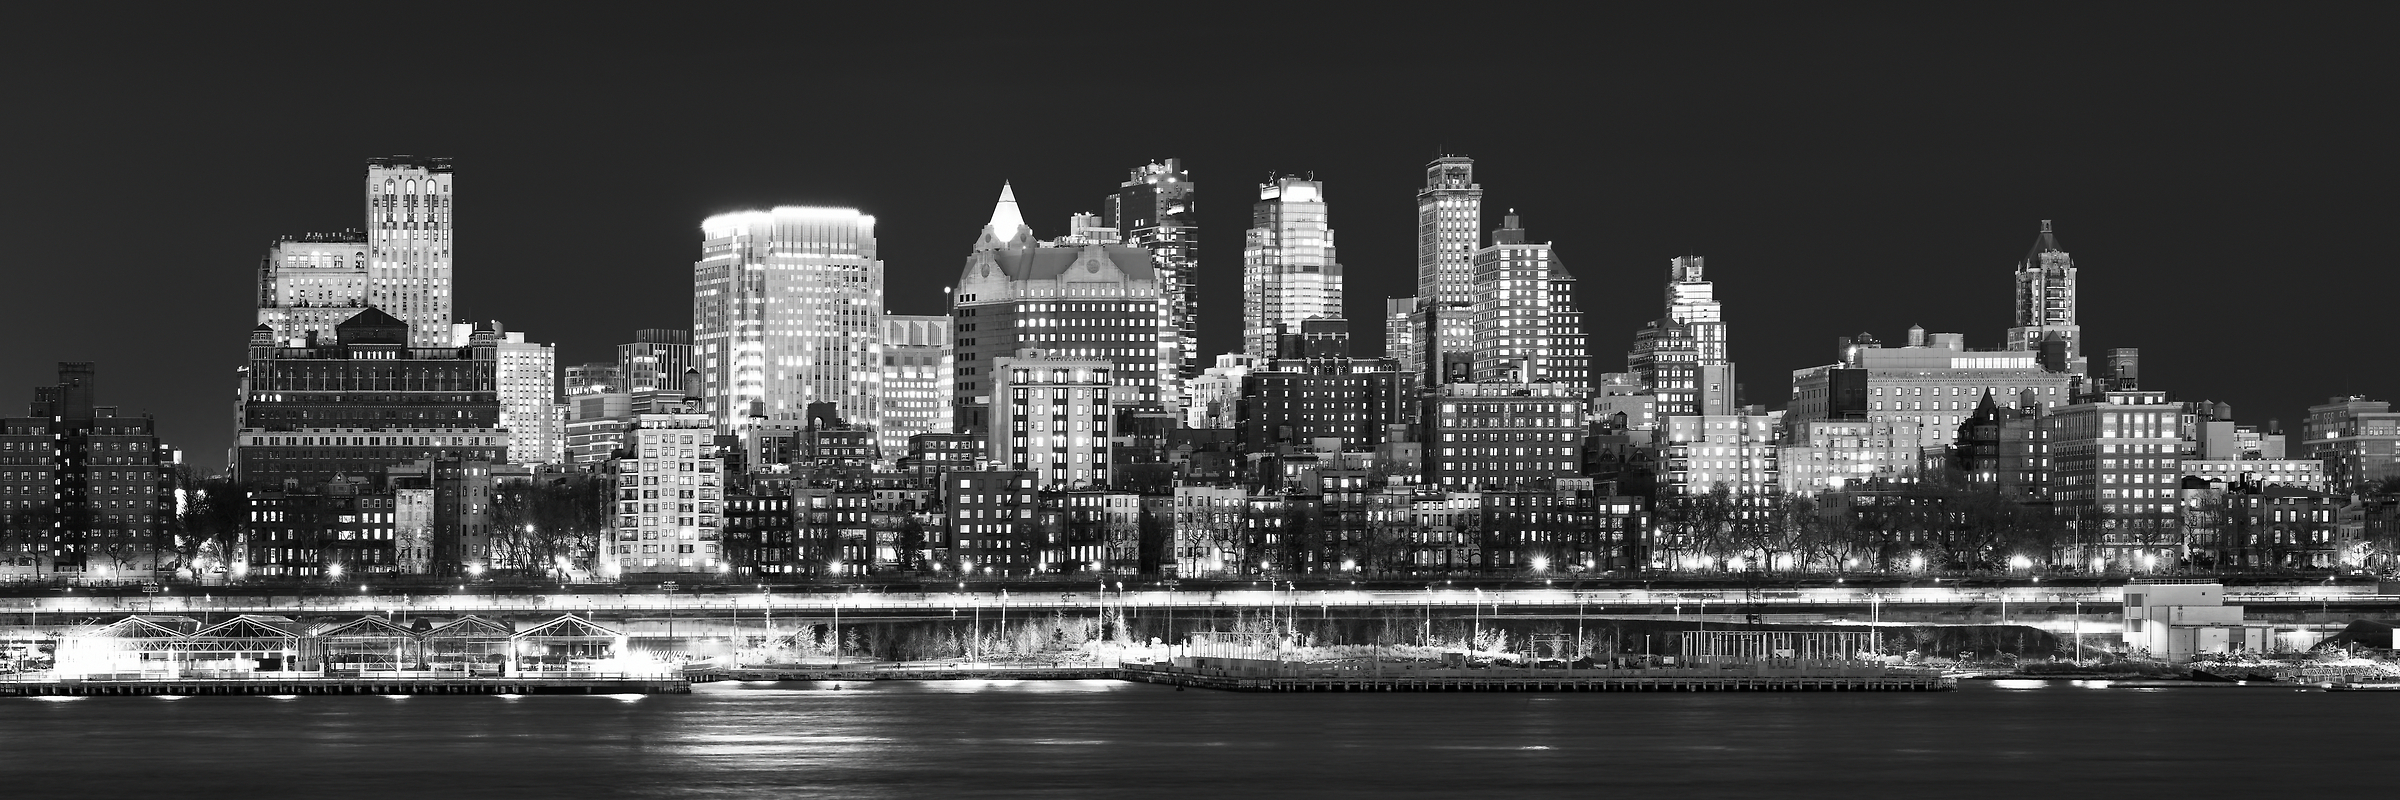 225 megapixels! A very high resolution, large-format VAST photo of the Downtown Brooklyn and Brooklyn Heights skyline at sunset dusk; fine art black and white cityscape photograph created by Dan Piech in New York City